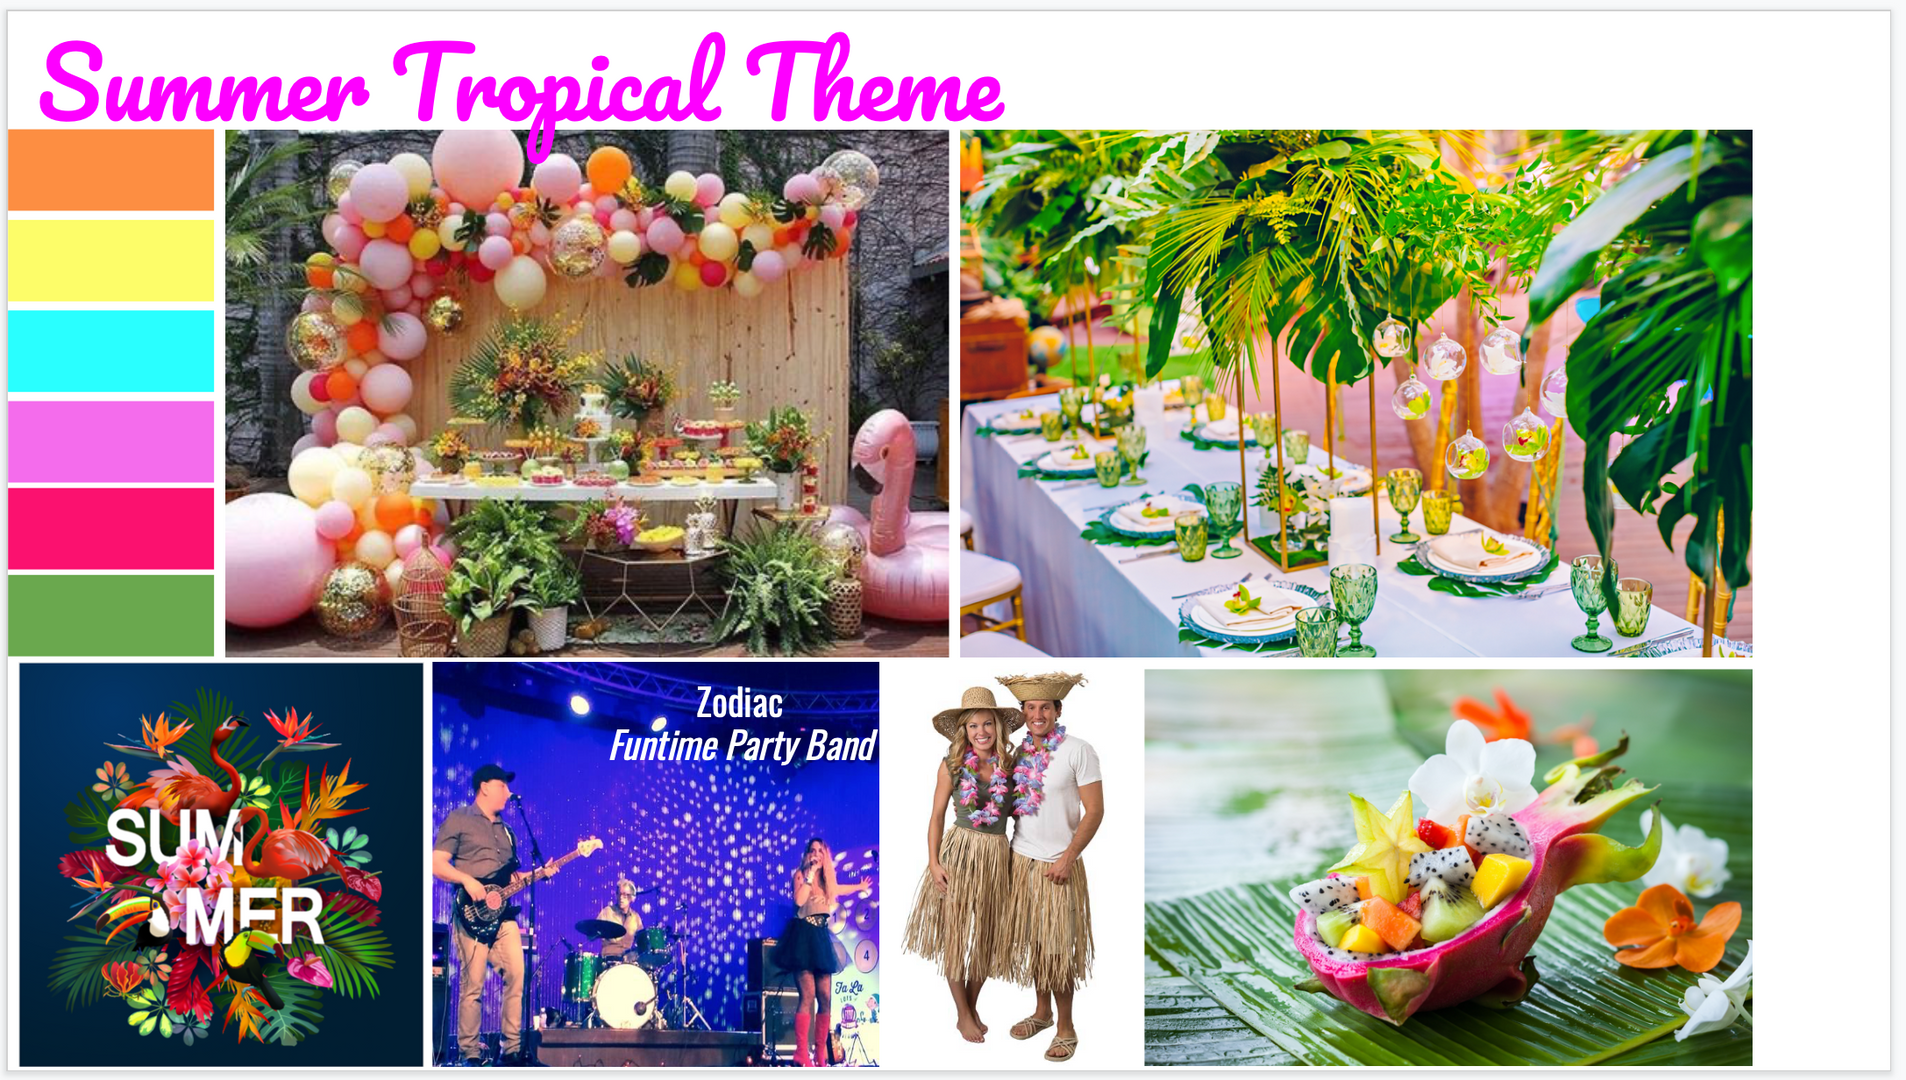 Summer Tropical Theme